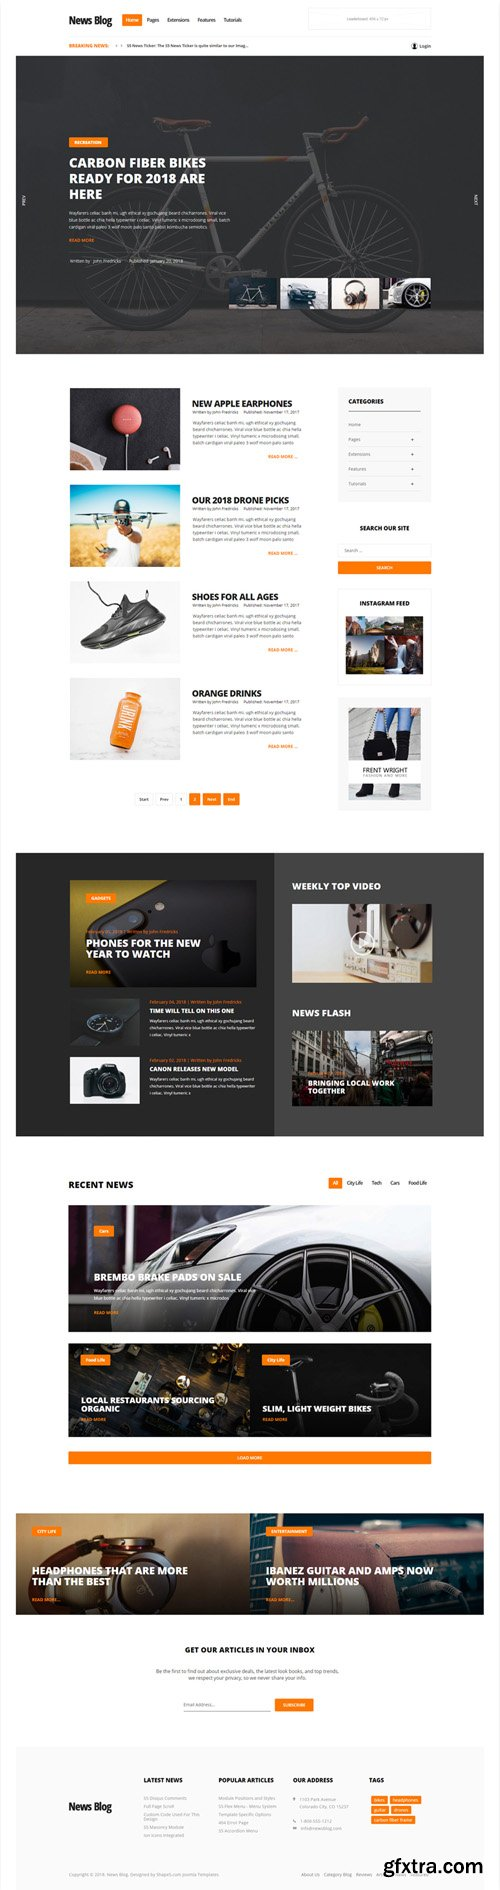 Shape5 - News Blog v1.0.3 - Joomla Template